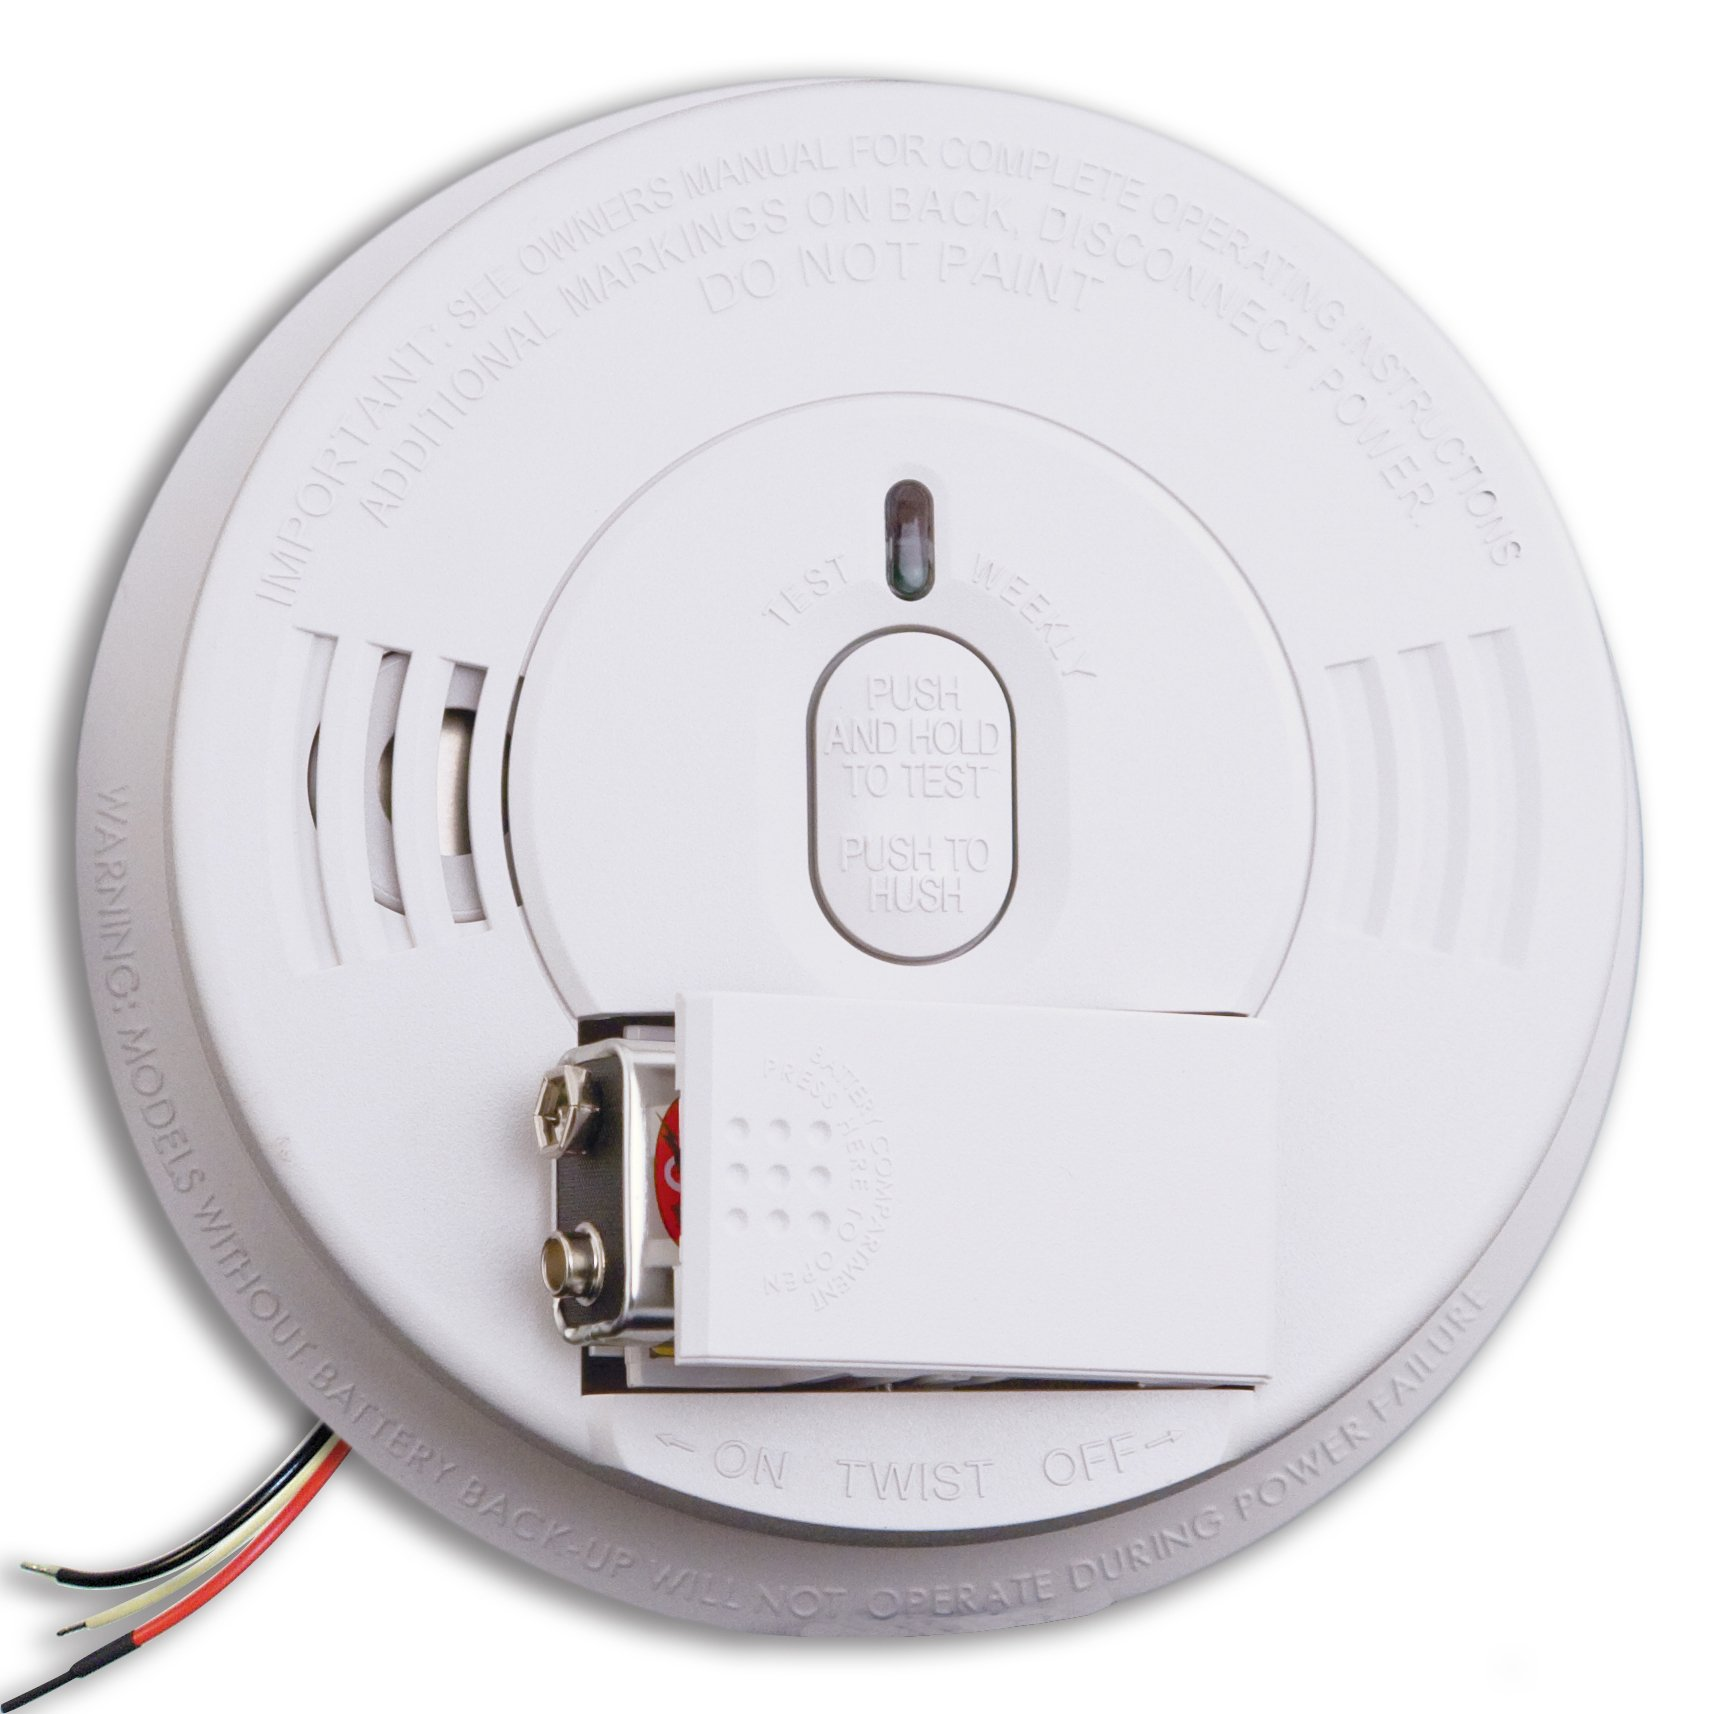 Smoke Detector Firex 120 1072b Wiring Diagram Libraries Braemar Air Conditioner And Carbon Monoxide Alarm Amazon Comkidde I12060 Hardwire With Front Load Battery Backup